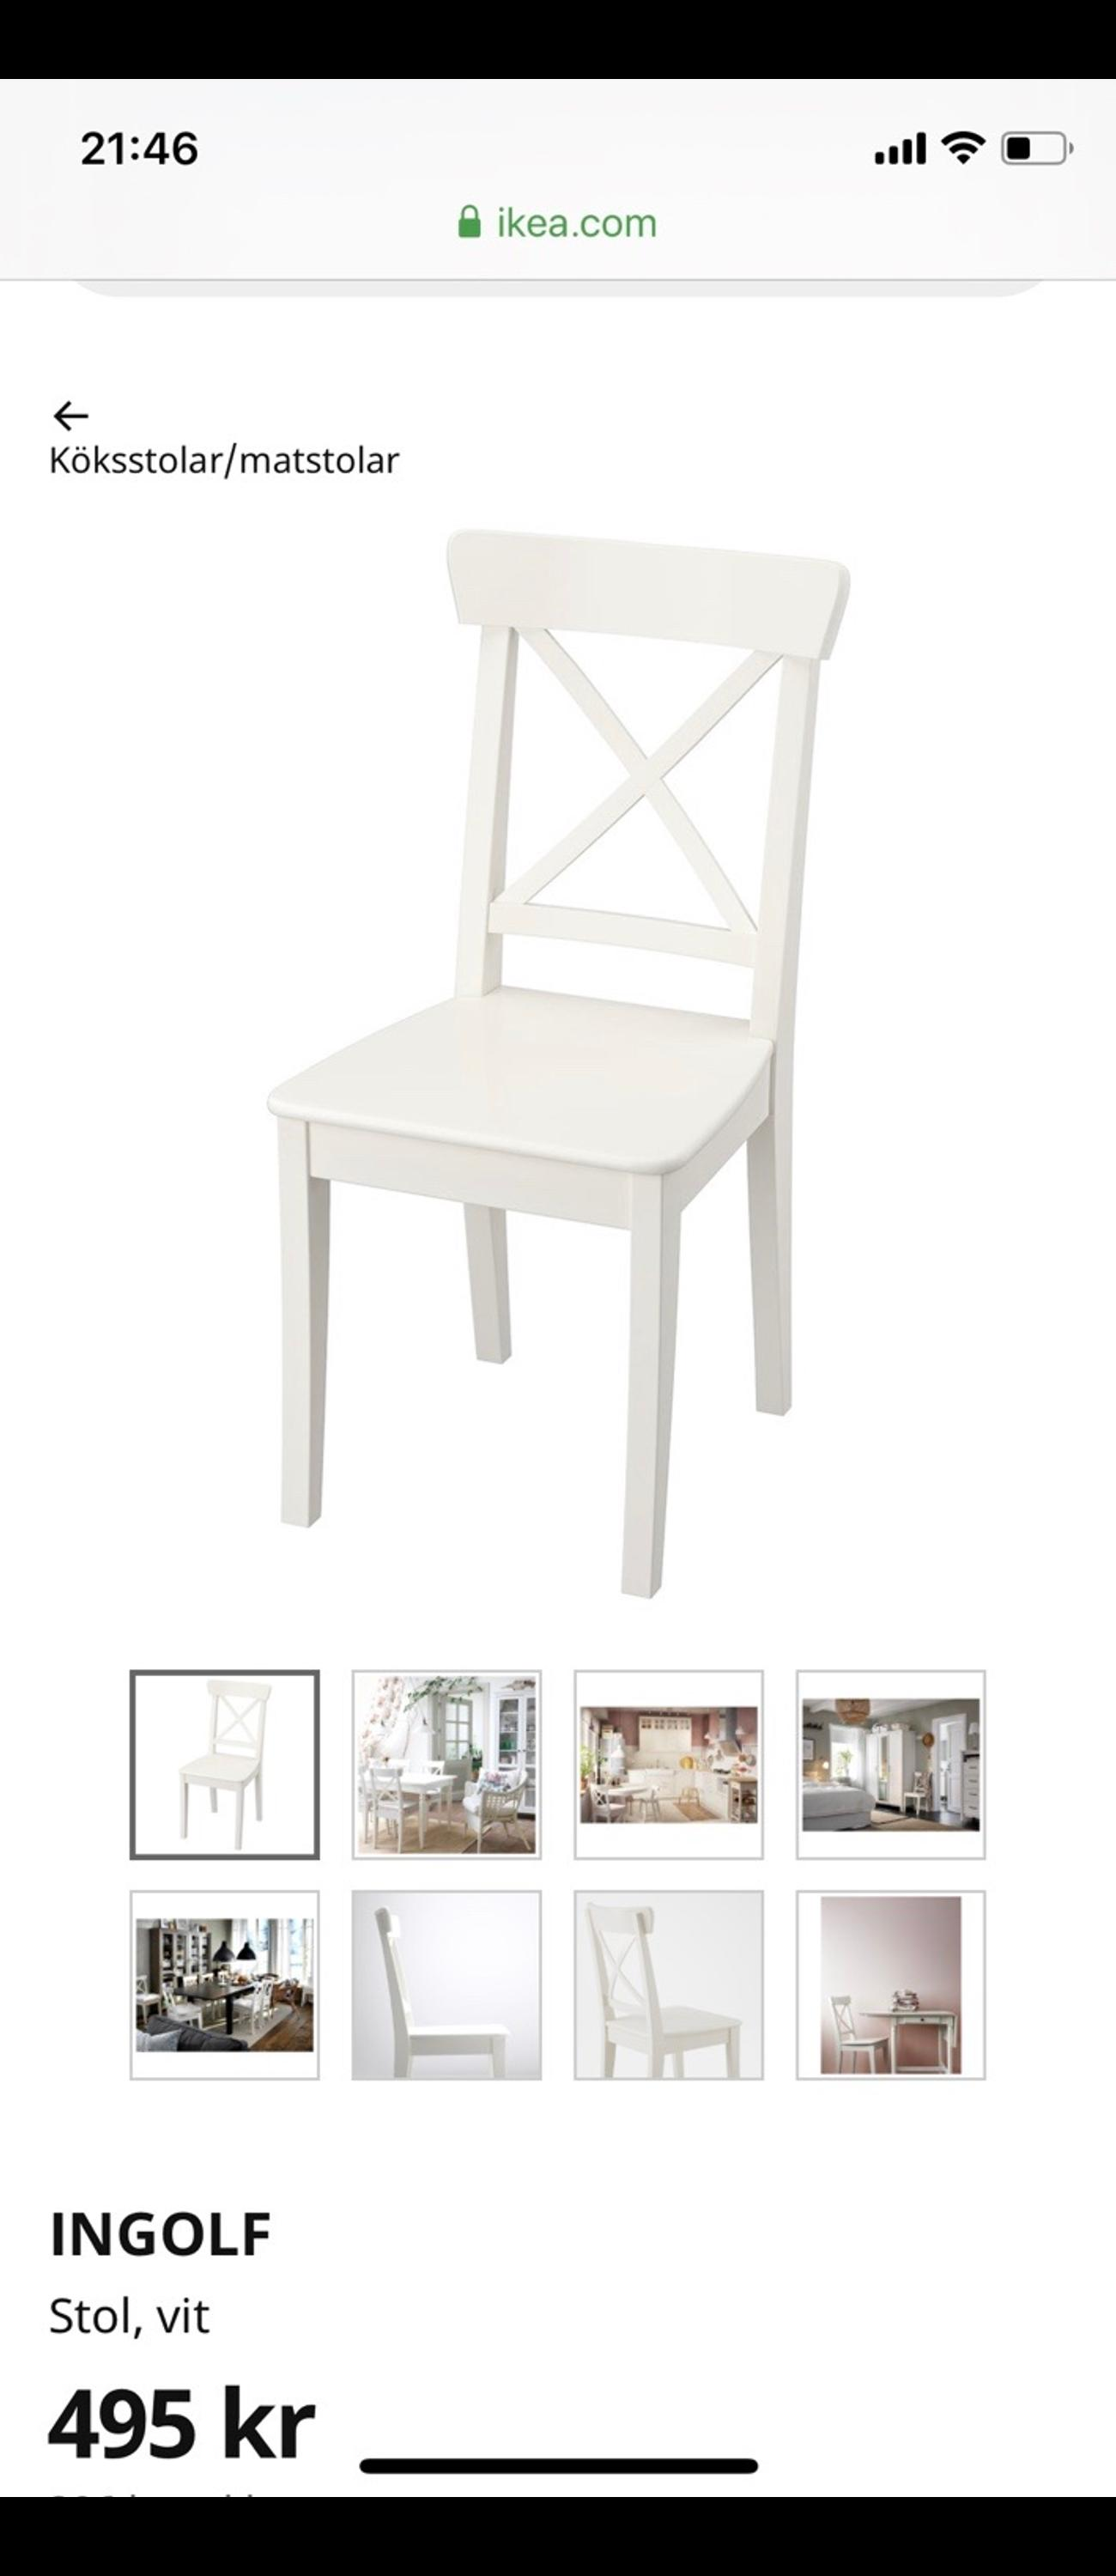 Picture of: Tva Ikea Stolar Ingolf Dynor In 111 24 Stockholm For Sek 395 00 For Sale Shpock